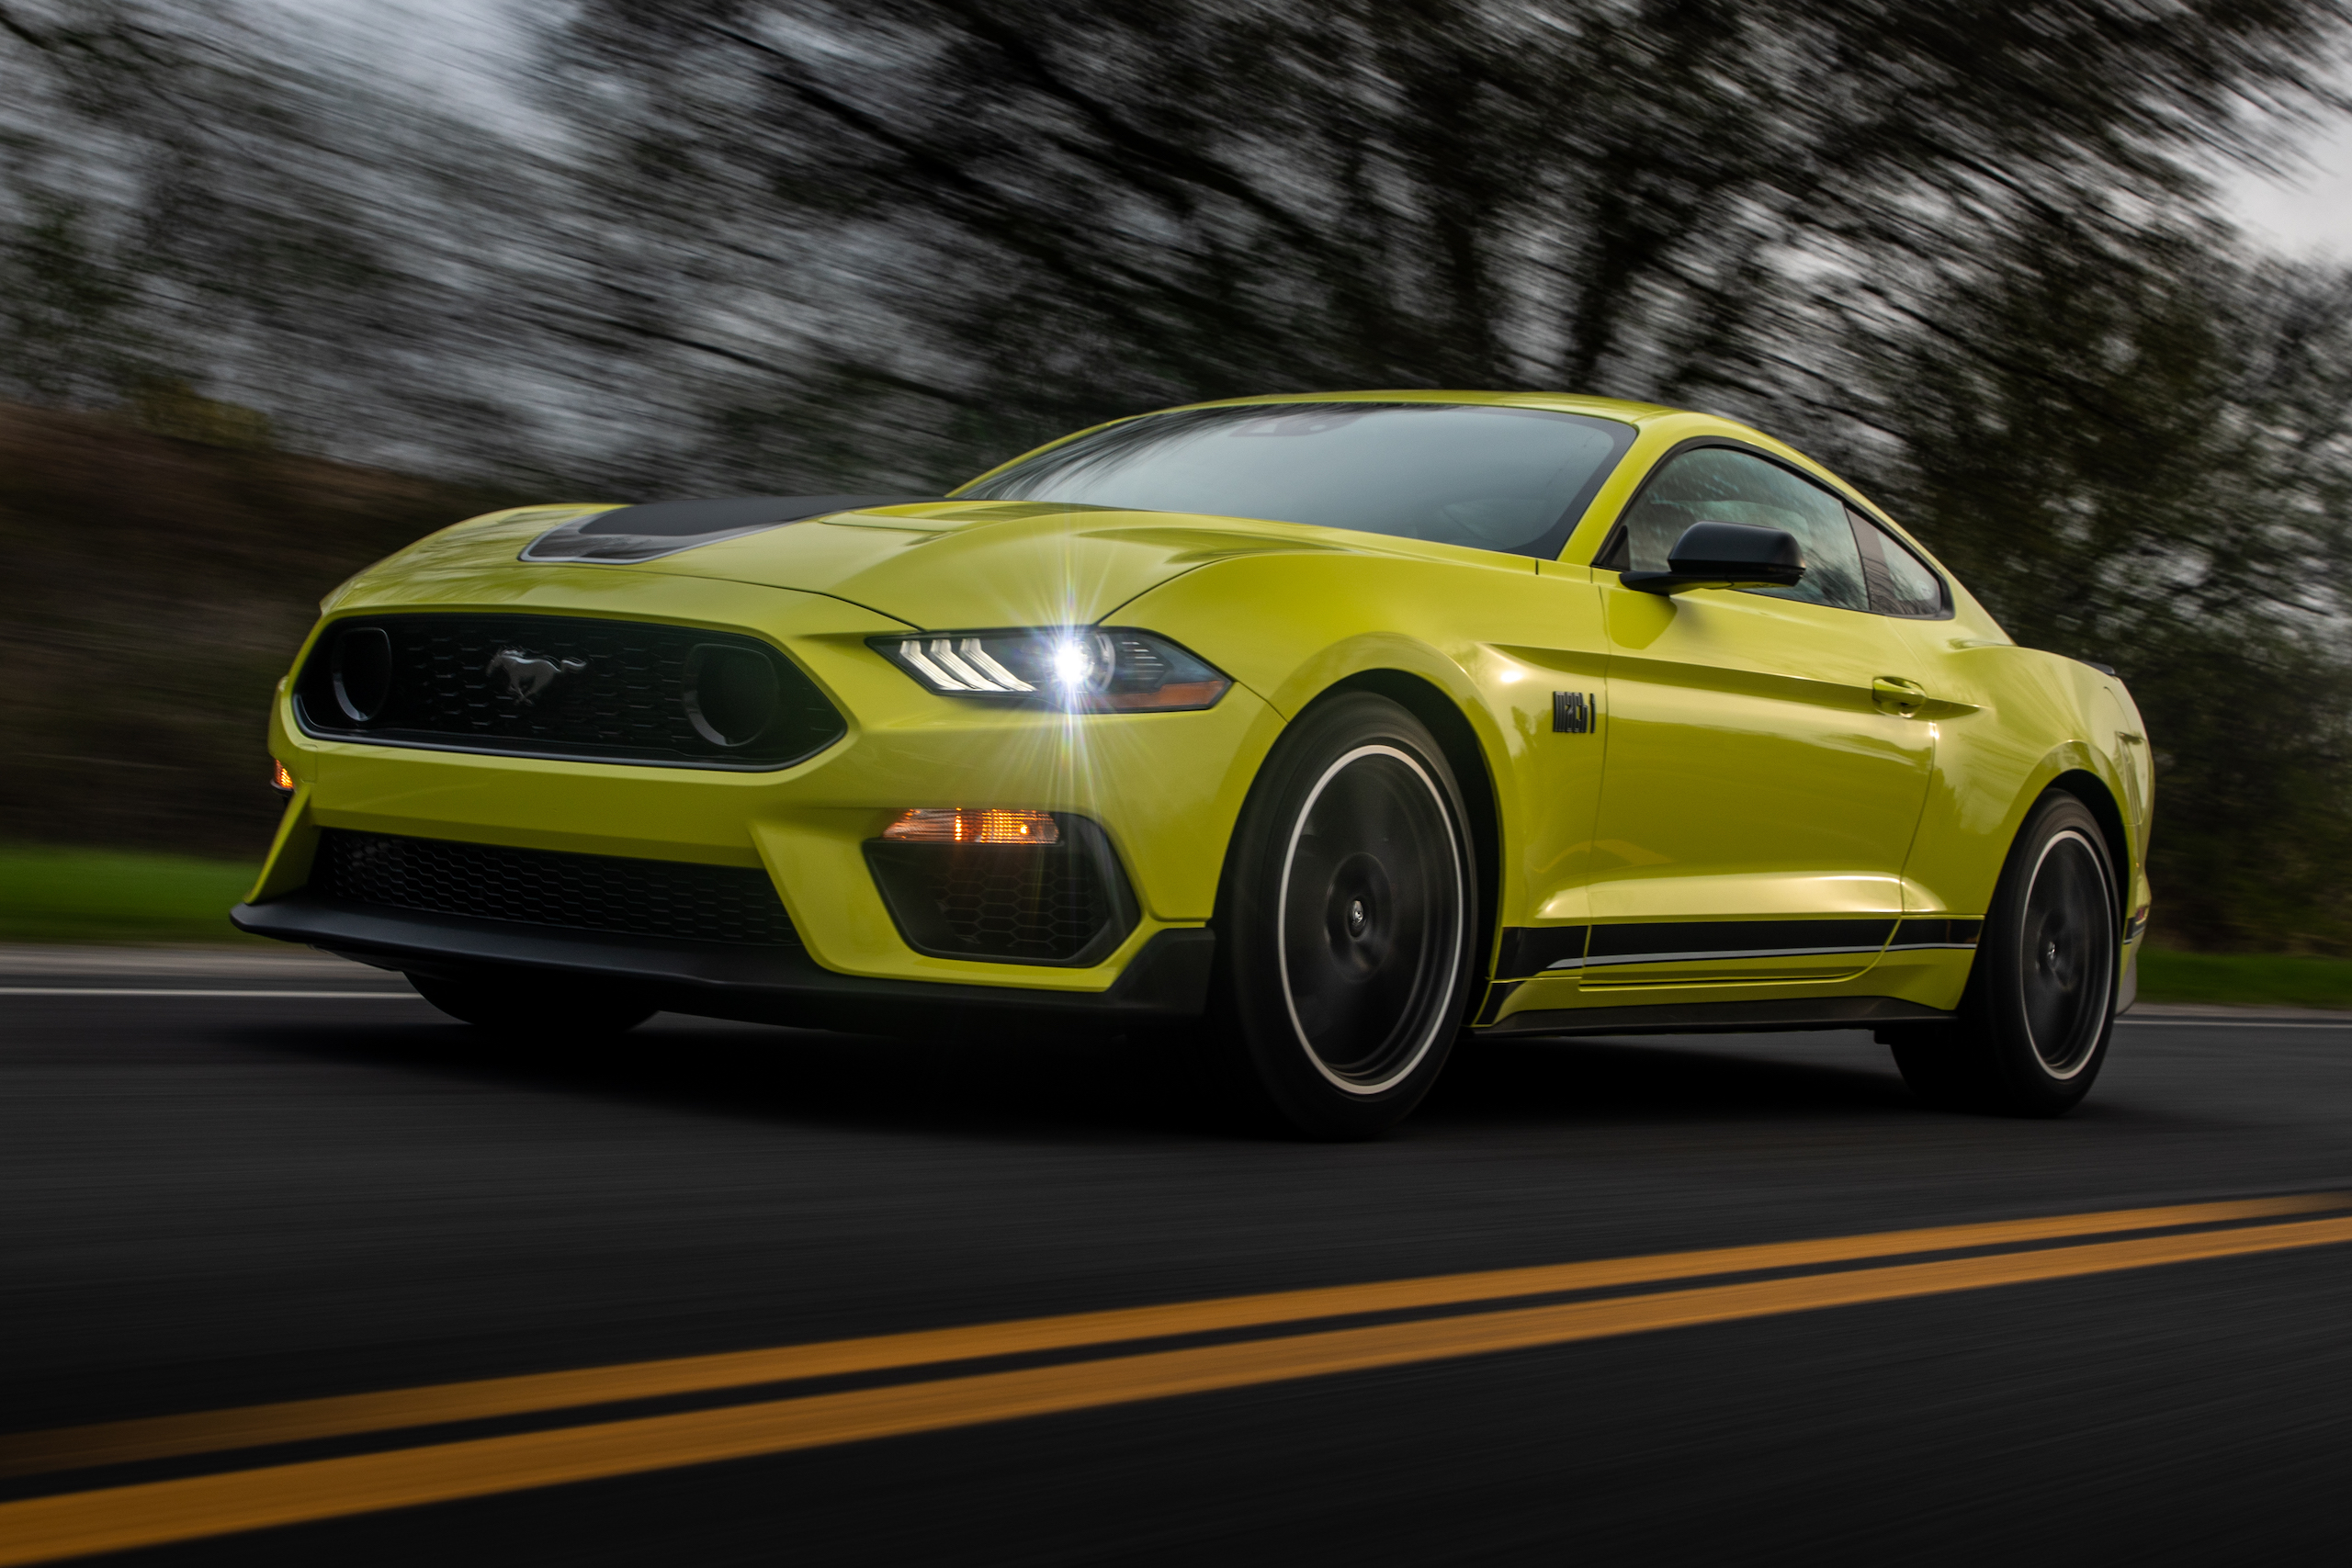 2021 Ford Mustang Mach 1 Grabber Yellow front three-quarter action